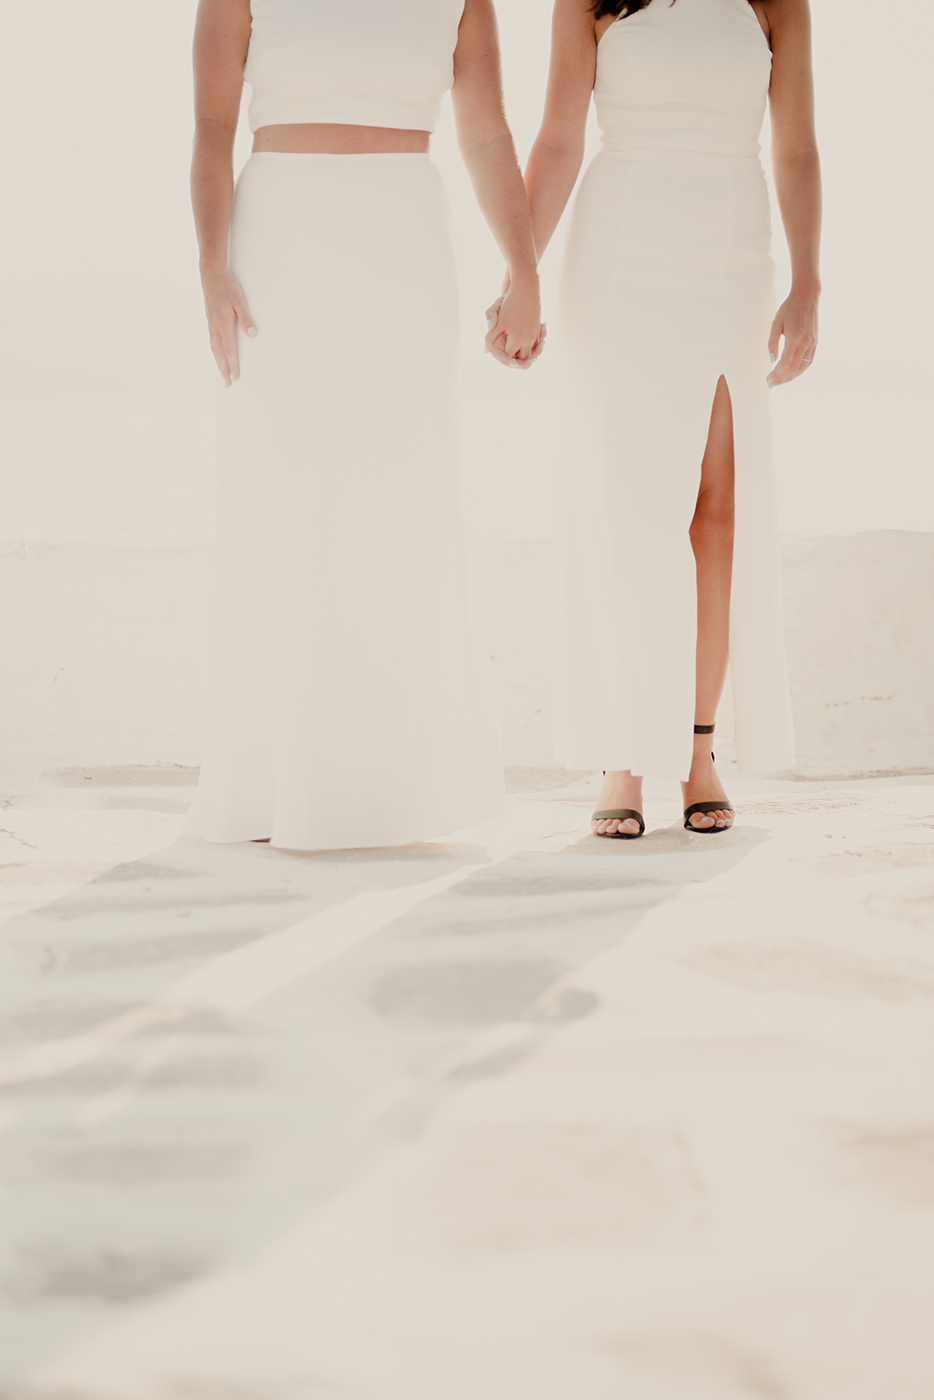 Kirill-Samarits-Wedding-Photography-Greece-AThens-Mykonos-Santorini-Same-Sex-Wedding-Photographer-Candice-Mykonos (17)